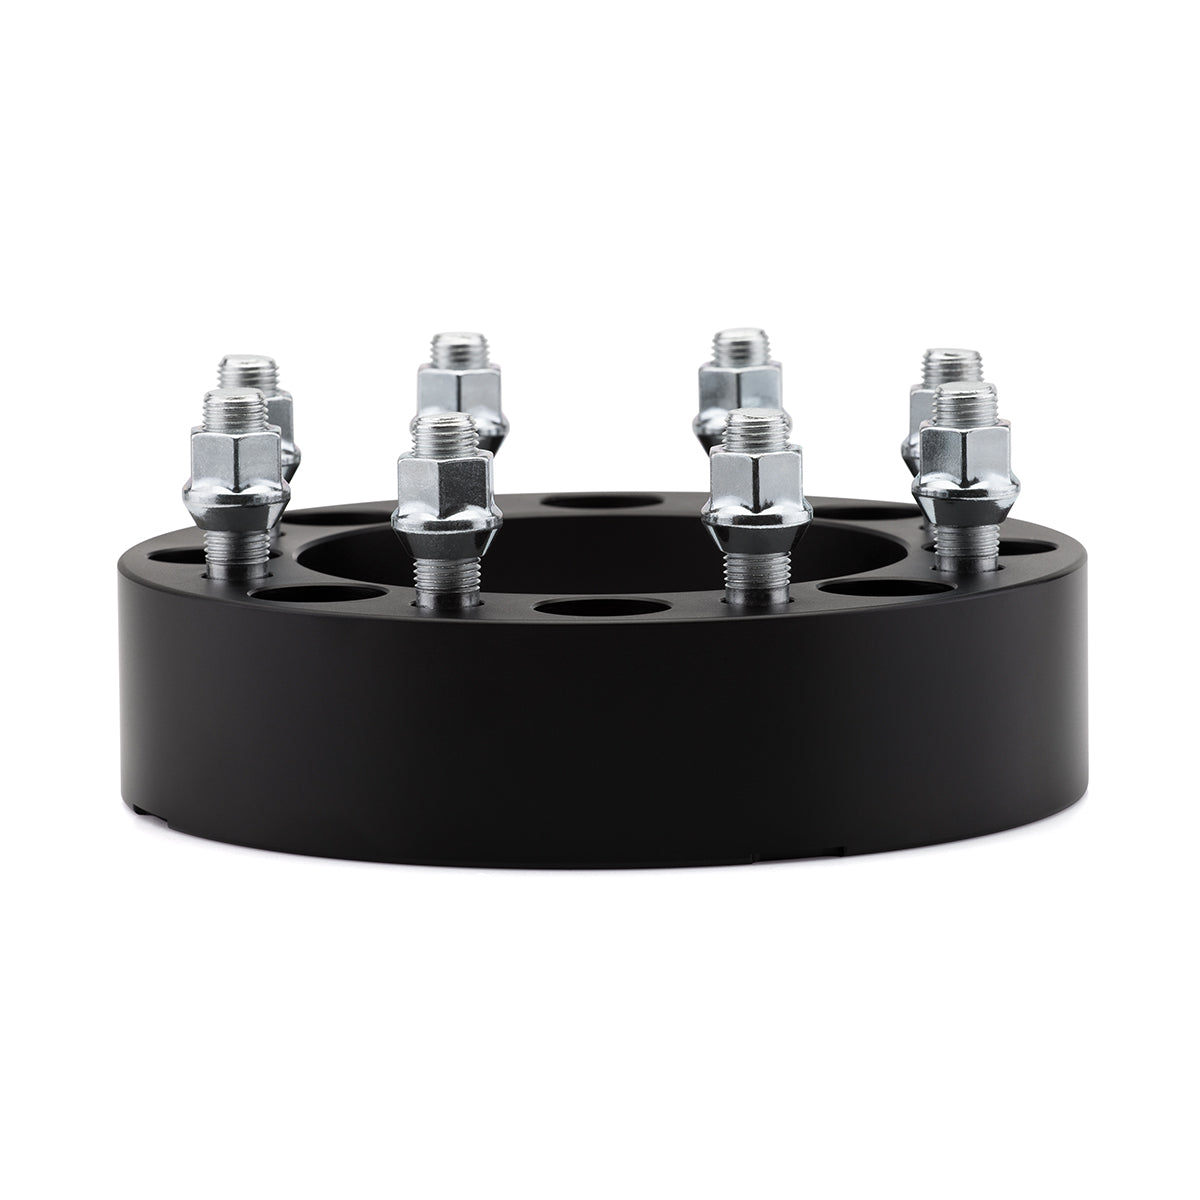 2000-2010 Chevy Silverado 3500HD Lug-Centric Wheel Spacer (4pc)